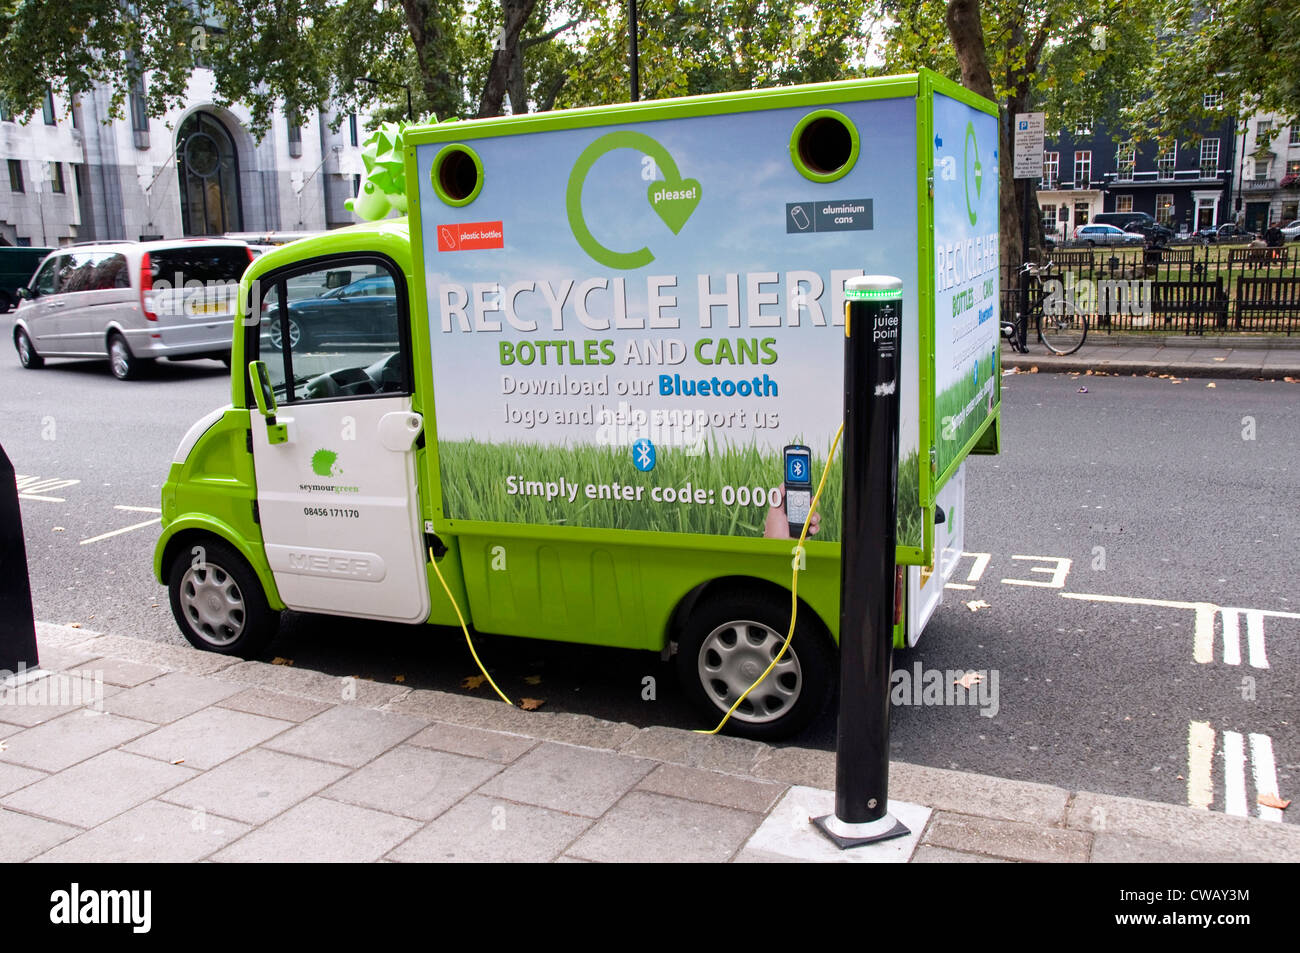 Seymour green mobile electric recycling van for bottles and cans in stock photo royalty free - Recycling mobel ...